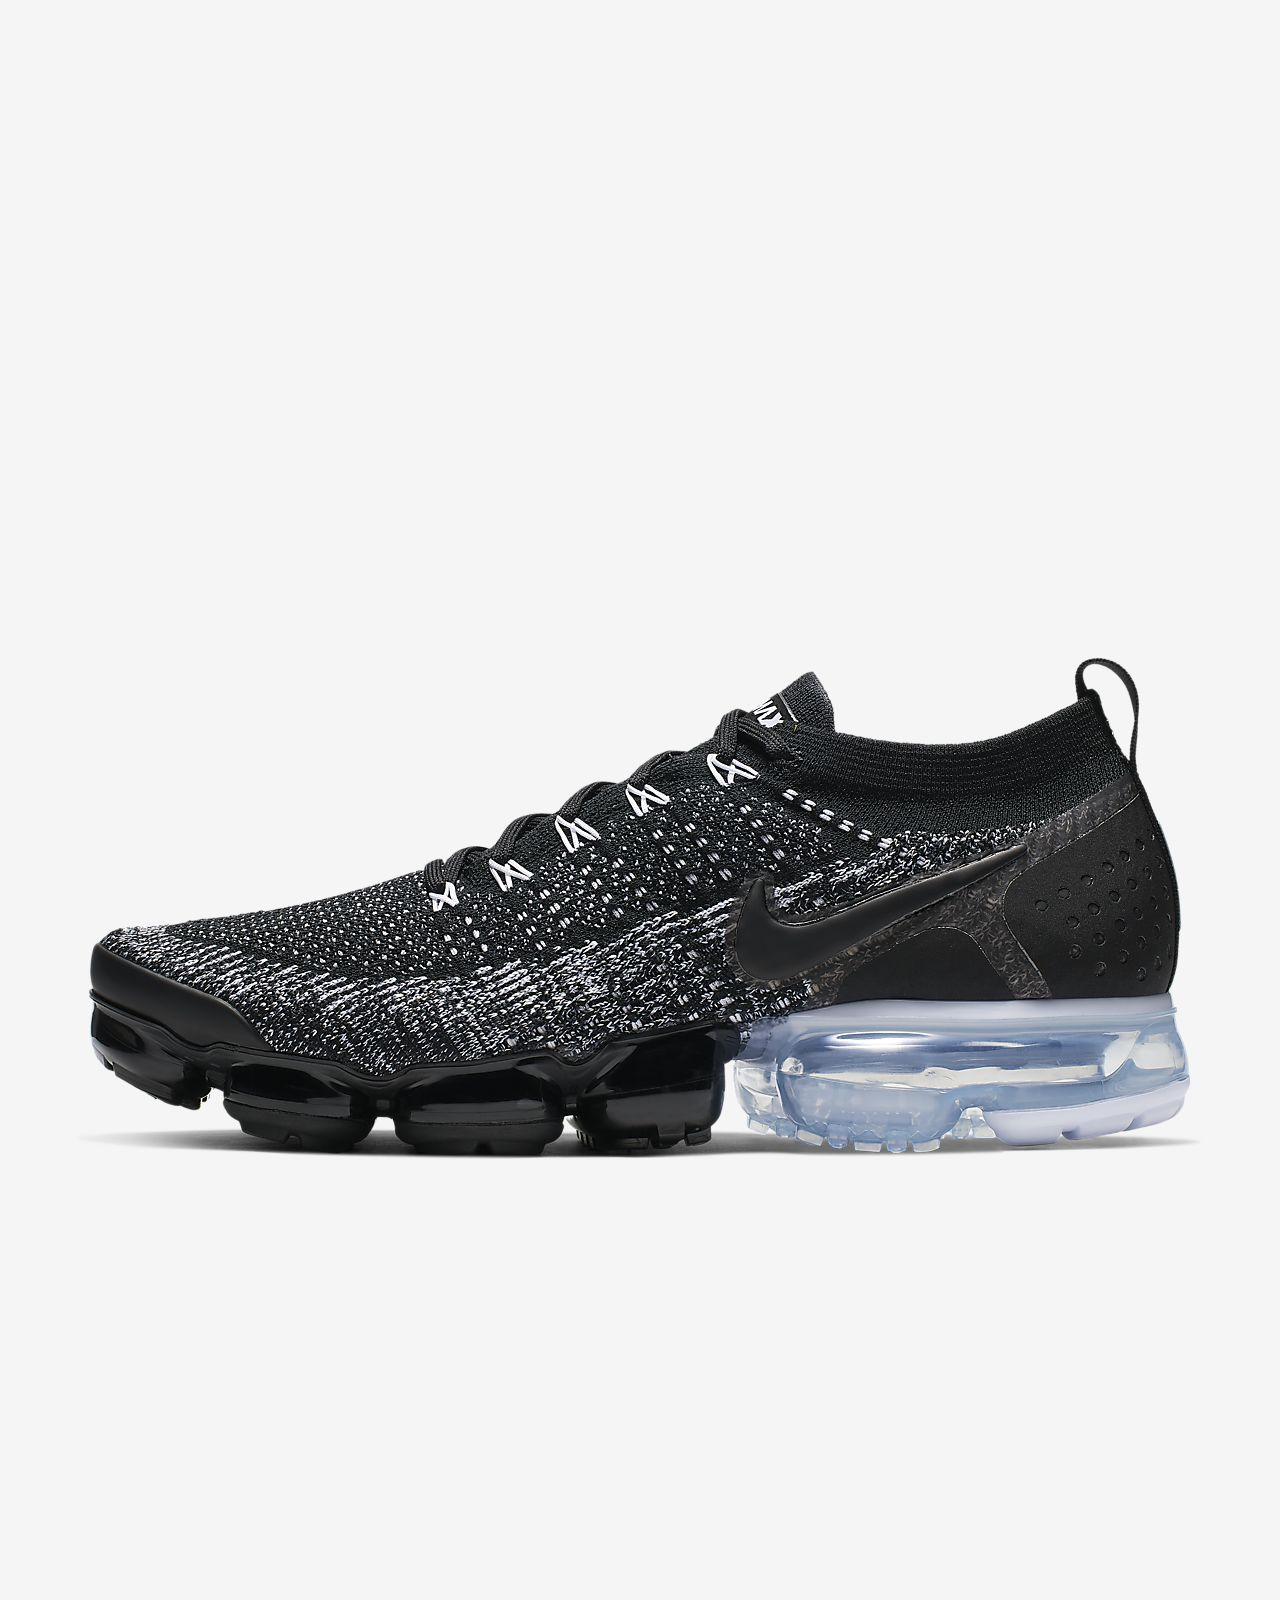 reputable site 6cfab 18528 Shoe. Nike Air VaporMax Flyknit 2